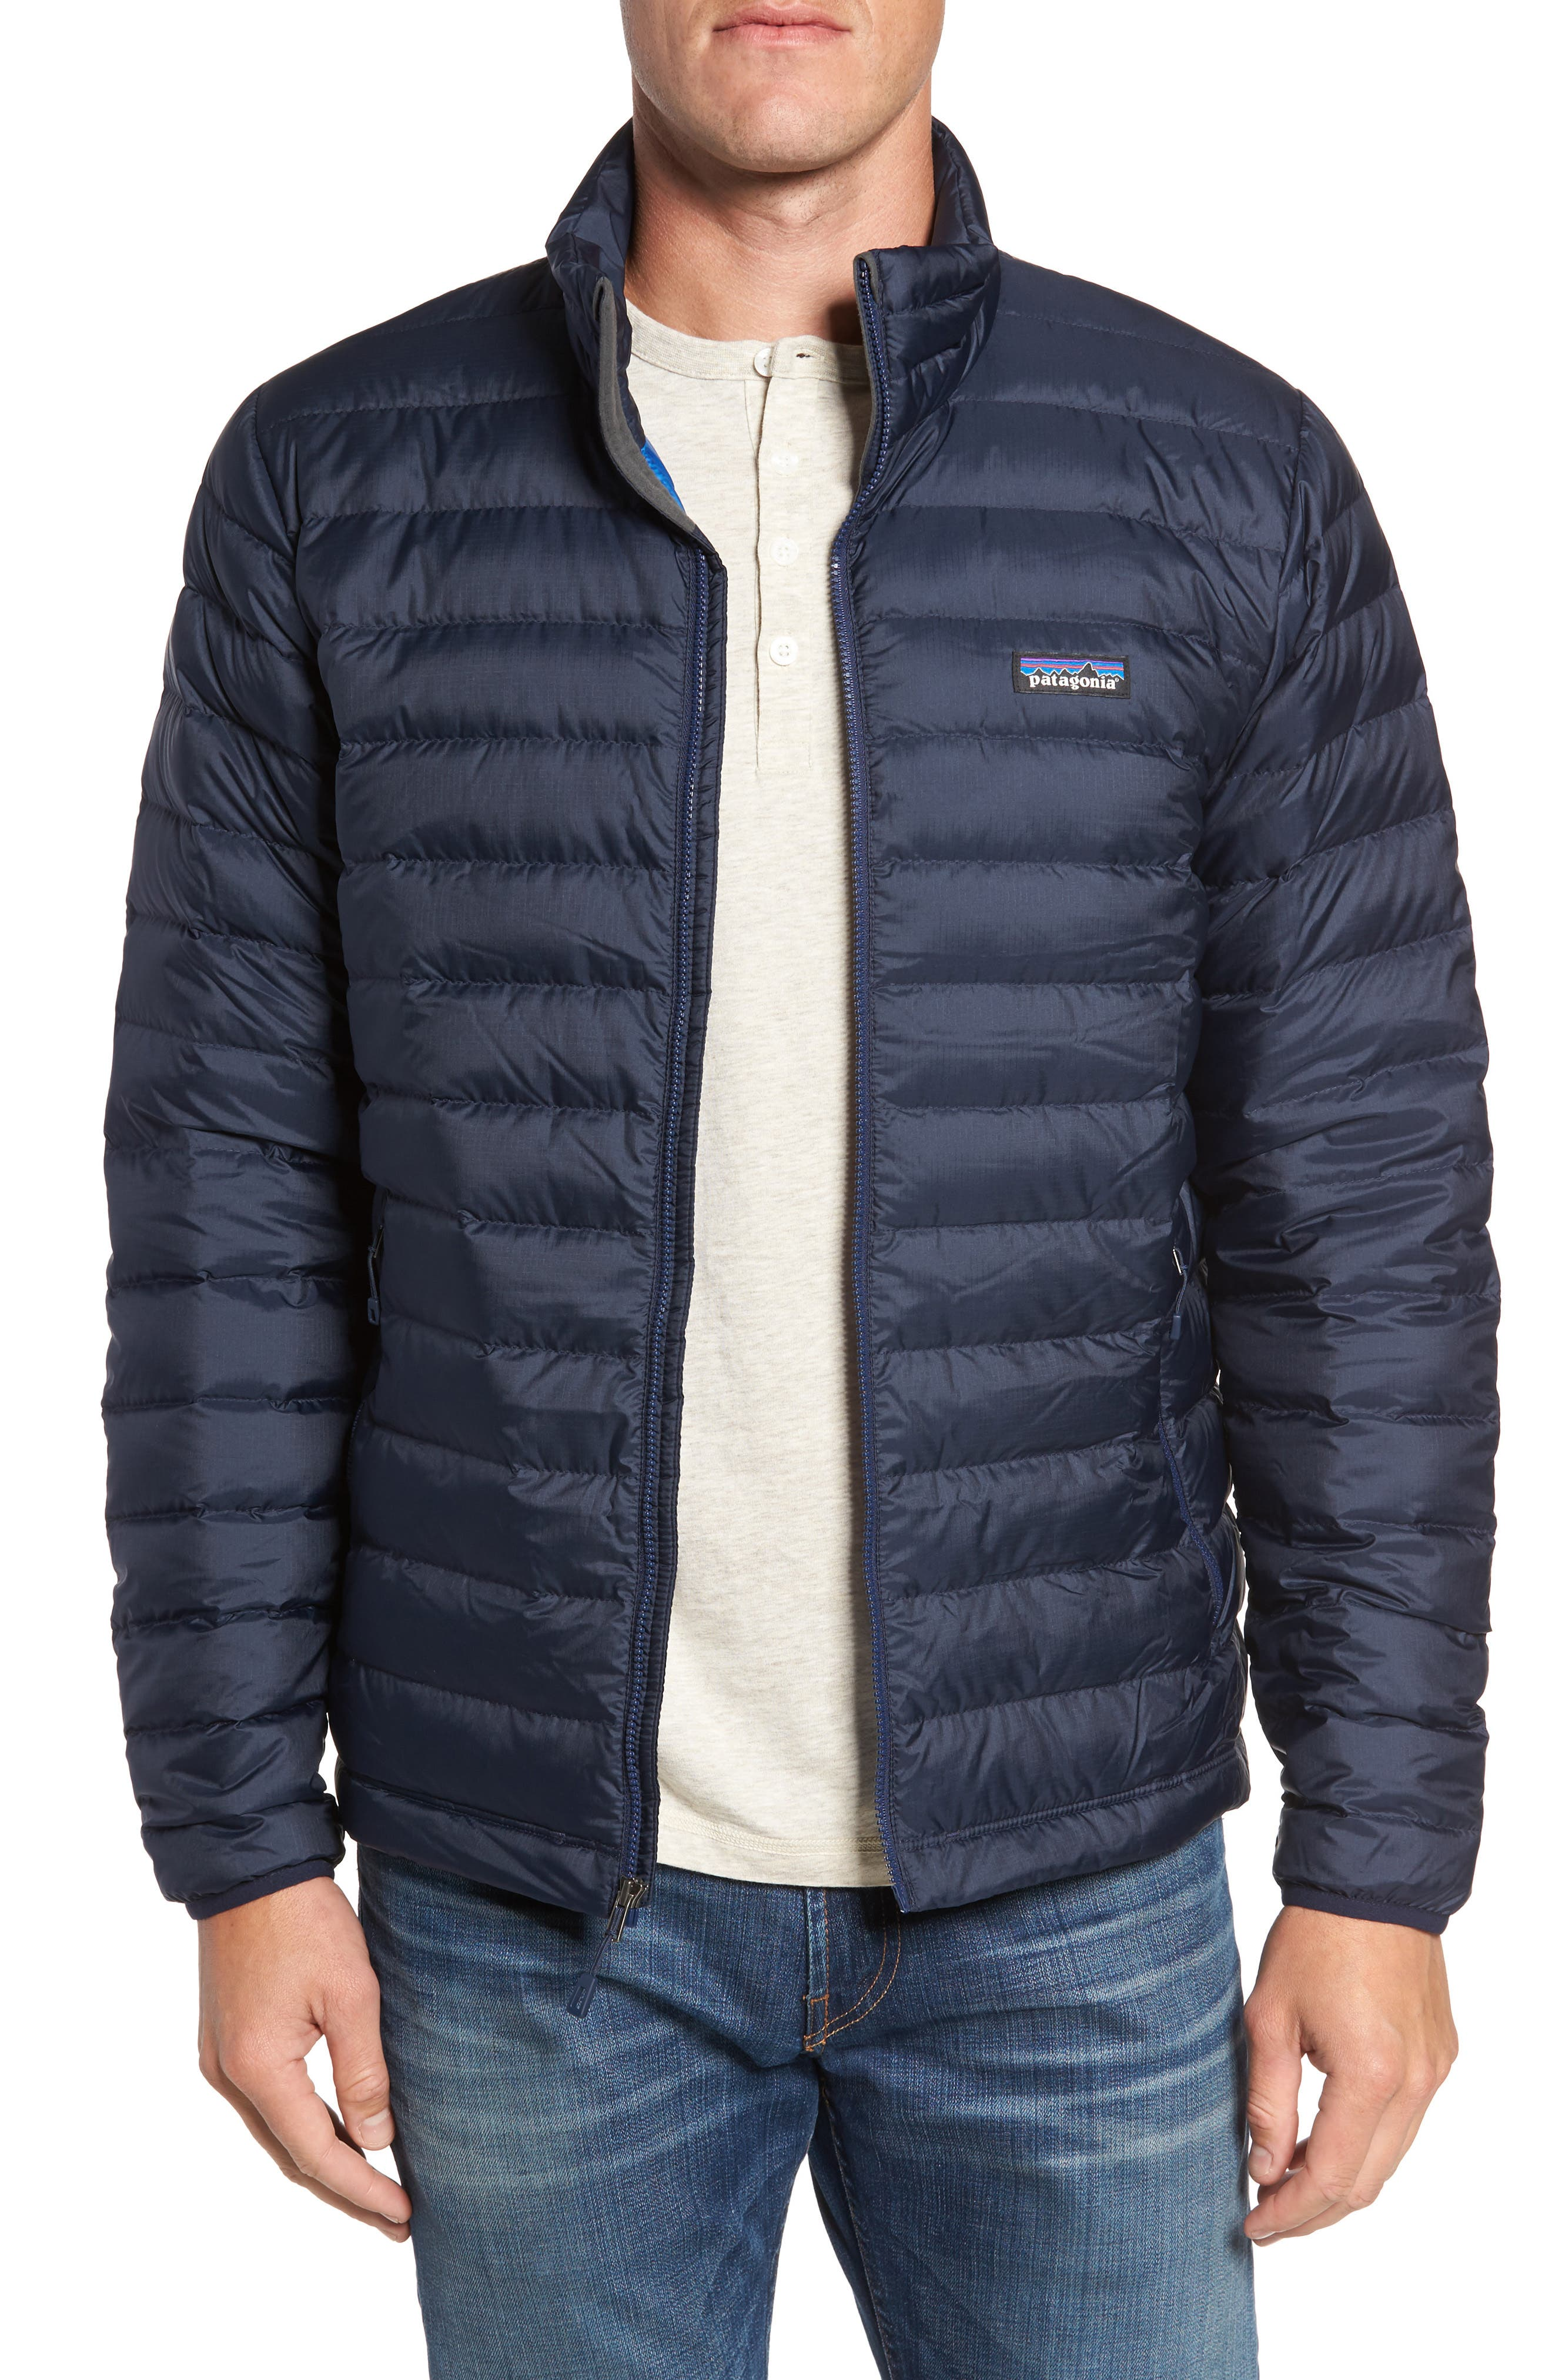 Water Repellent Down Jacket,                             Main thumbnail 1, color,                             NAVY BLUE W/ NAVY BLUE